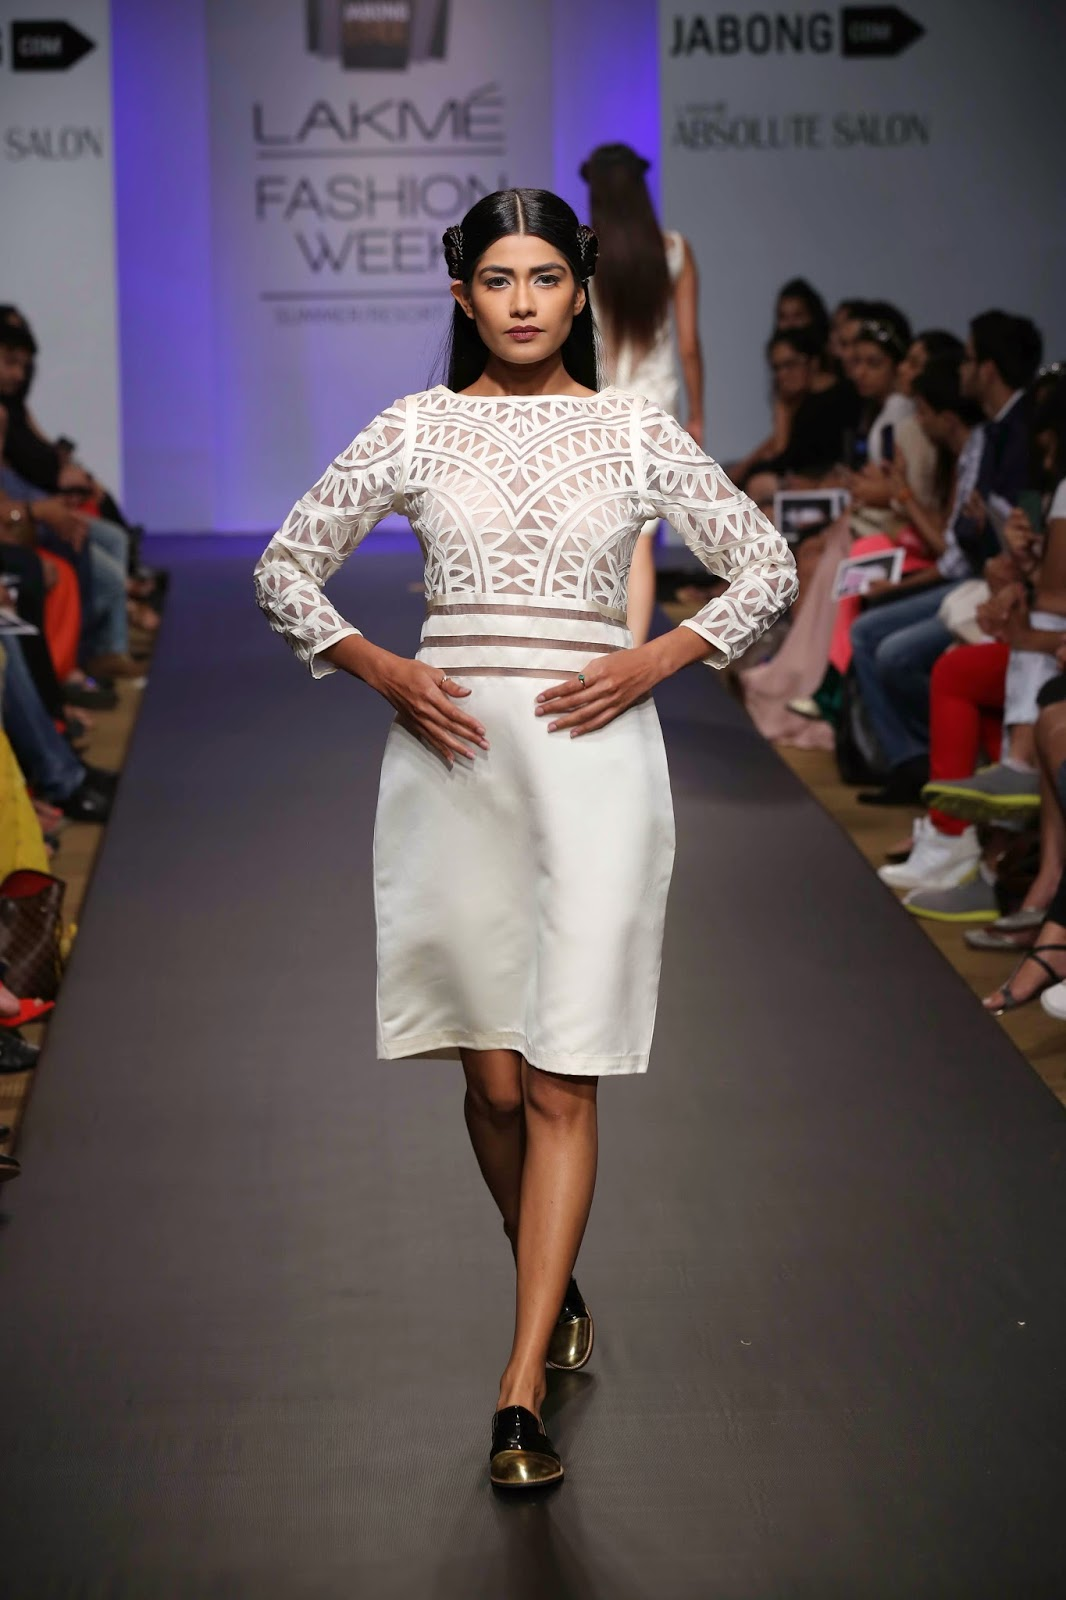 The colour palette was simple, blacks and whites helped set the mood as textures, prints and embellishments took centre stage on pieces like skirts, trousers, tops, blazers, shorts and dresses.